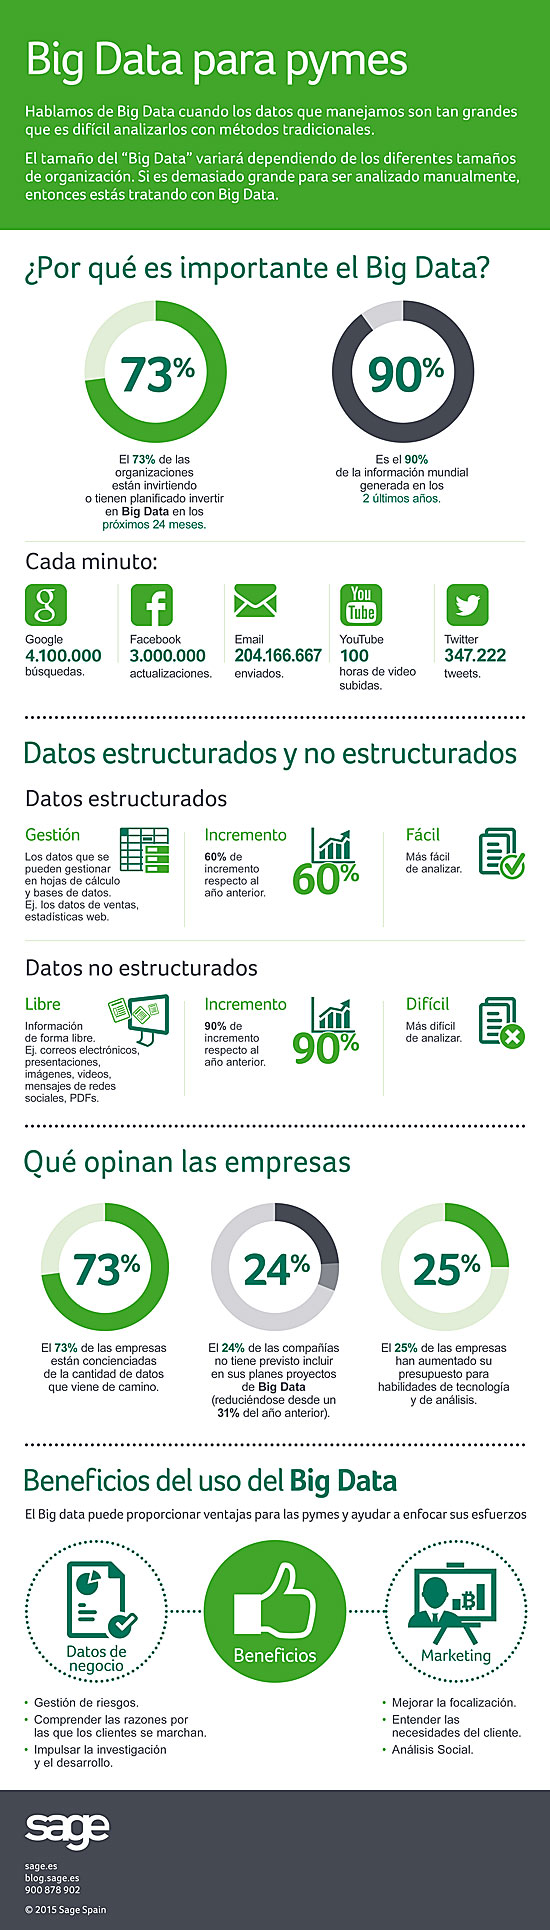 Big Data para pymes